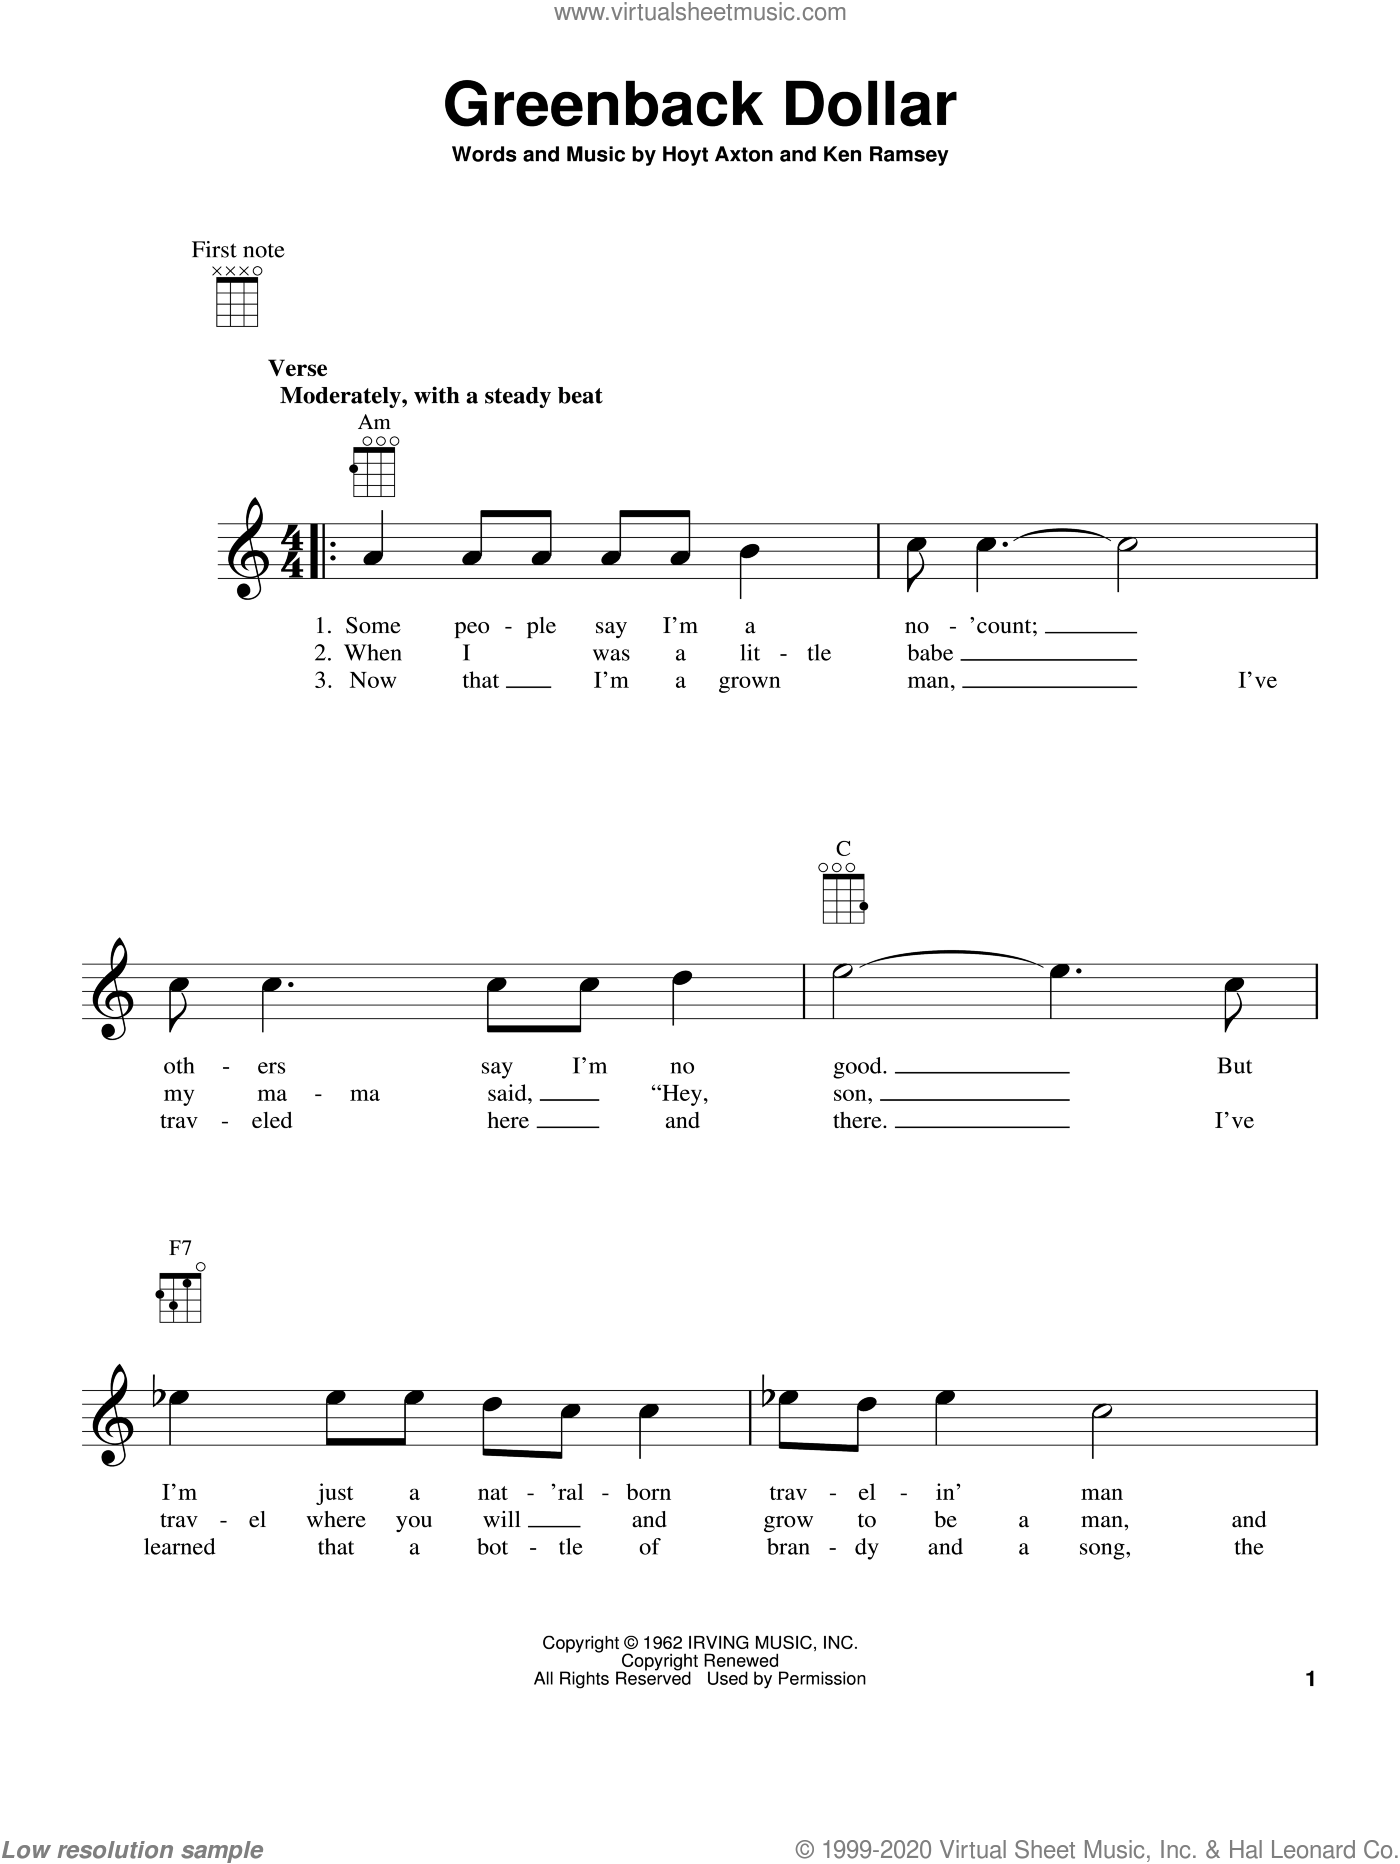 Greenback Dollar sheet music for ukulele by Ken Ramsey